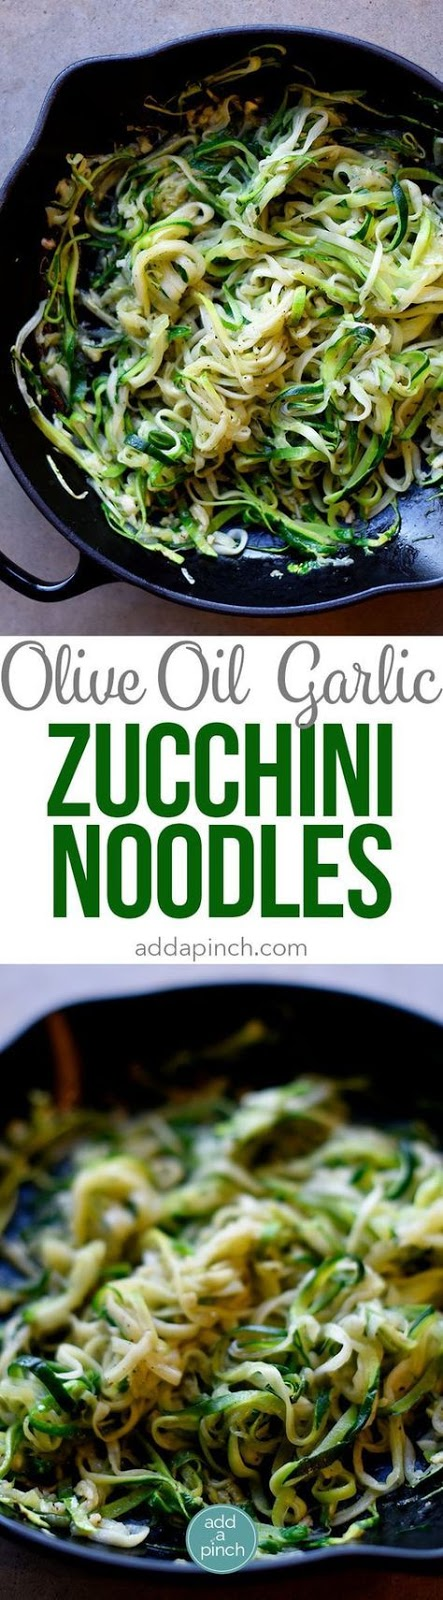 Olive Oil Garlic Zucchini Noodles Recipe